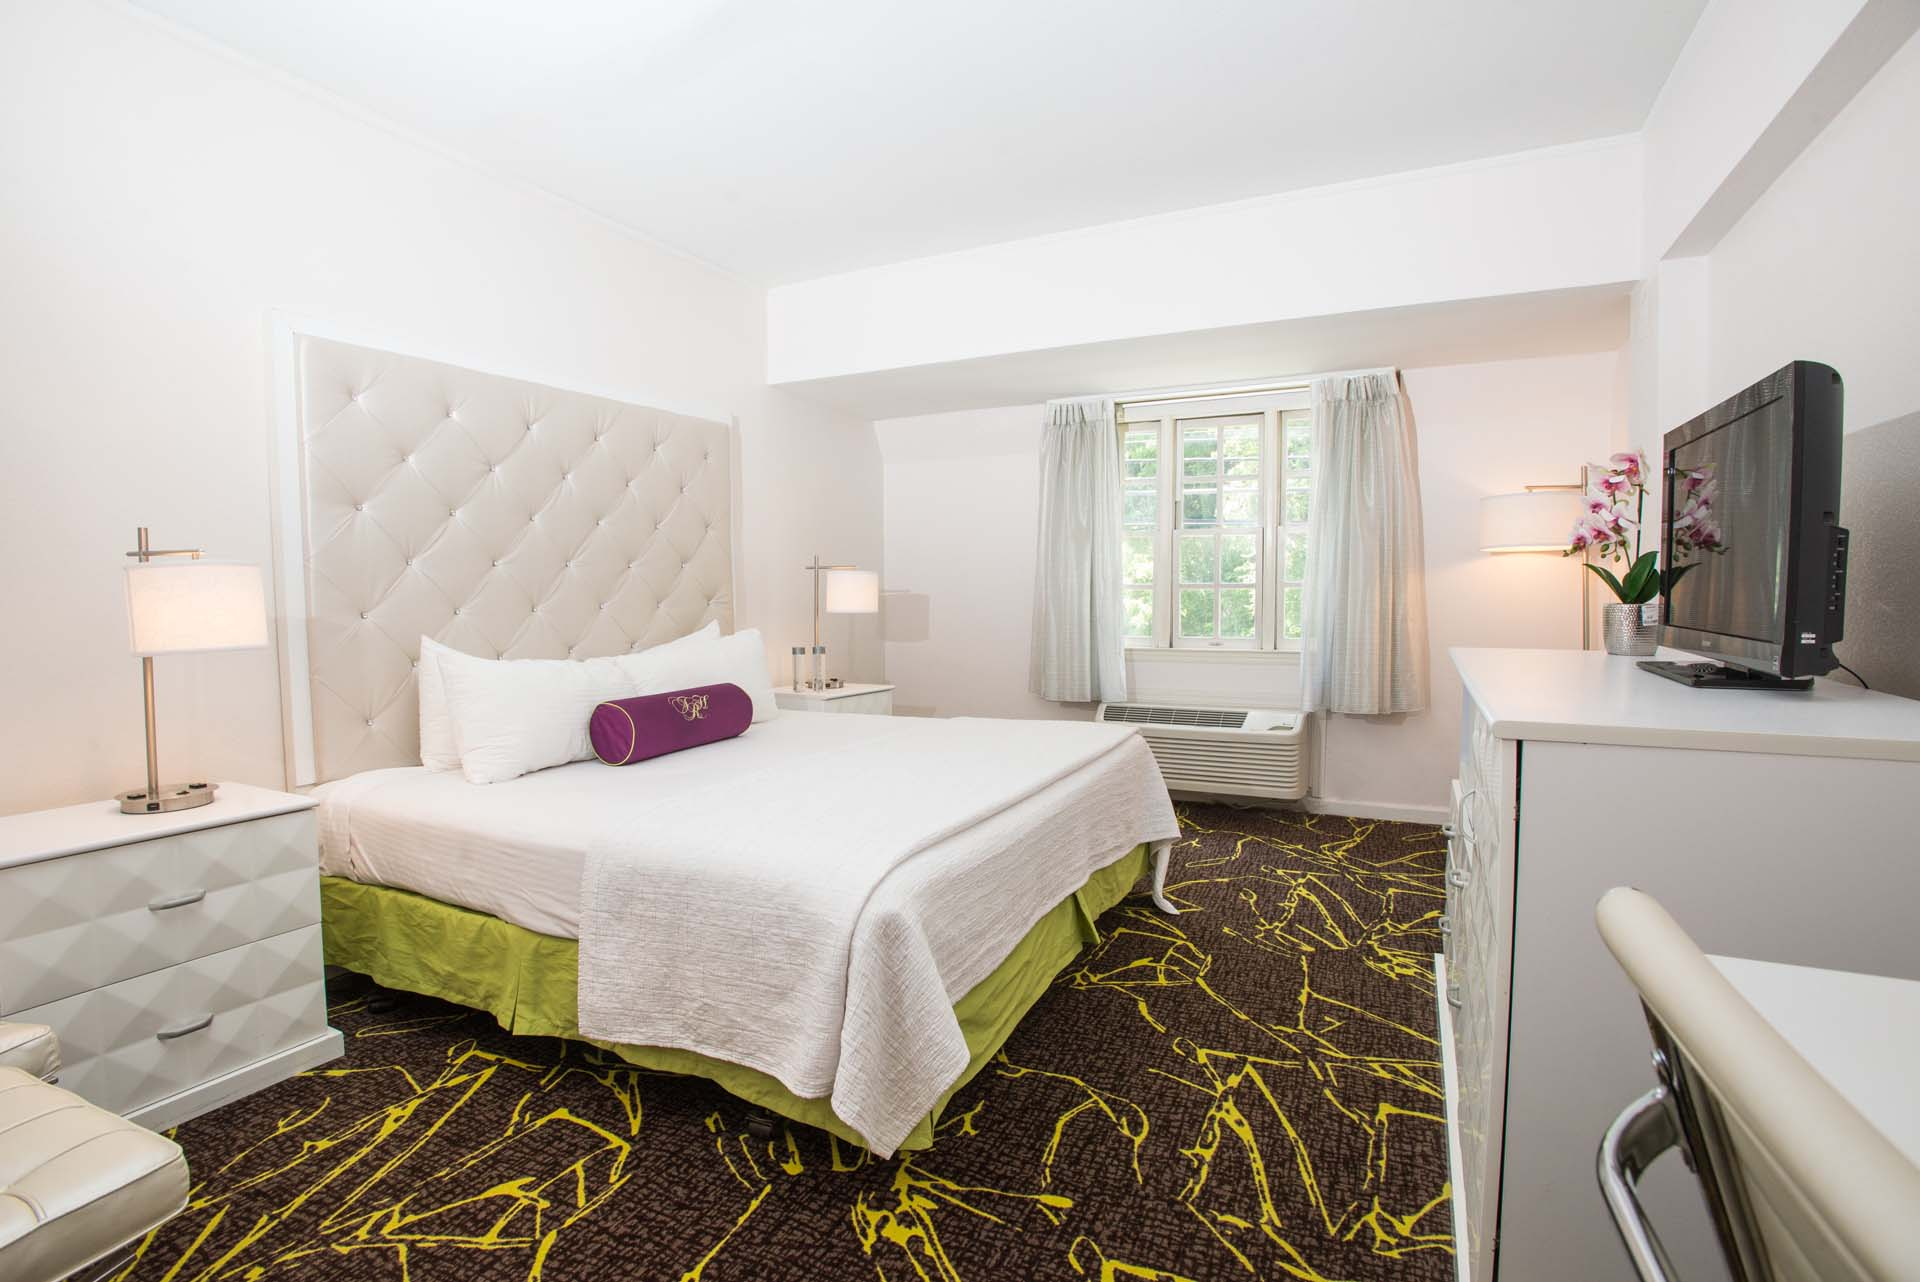 The Roslyn Hotel A Boutique Hotel Located In Roslyn Ny